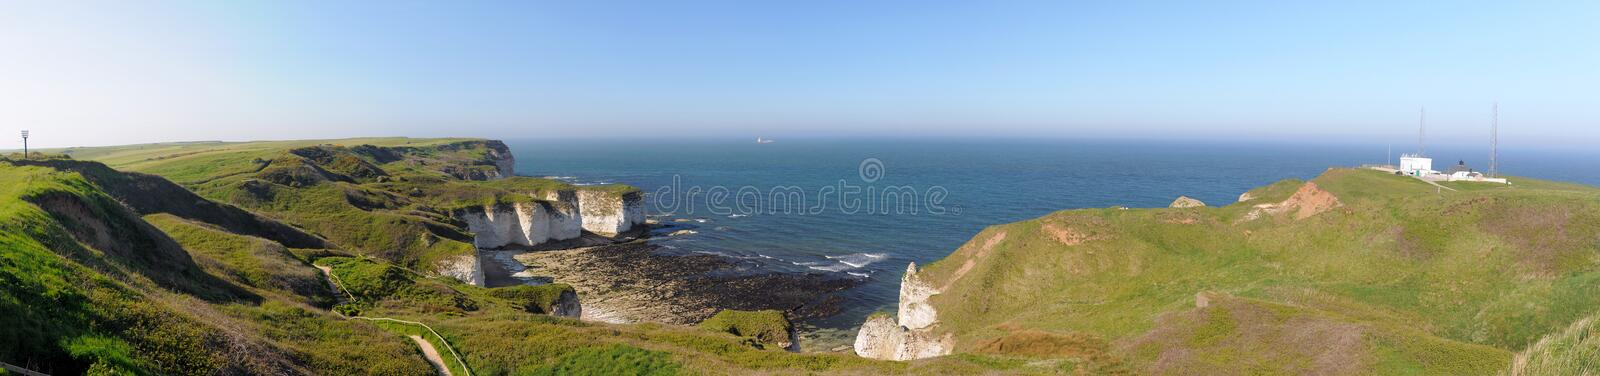 Download Wide Panorama Of Sea And Cliffs In Flamborough, UK Stock Photo - Image: 25172672